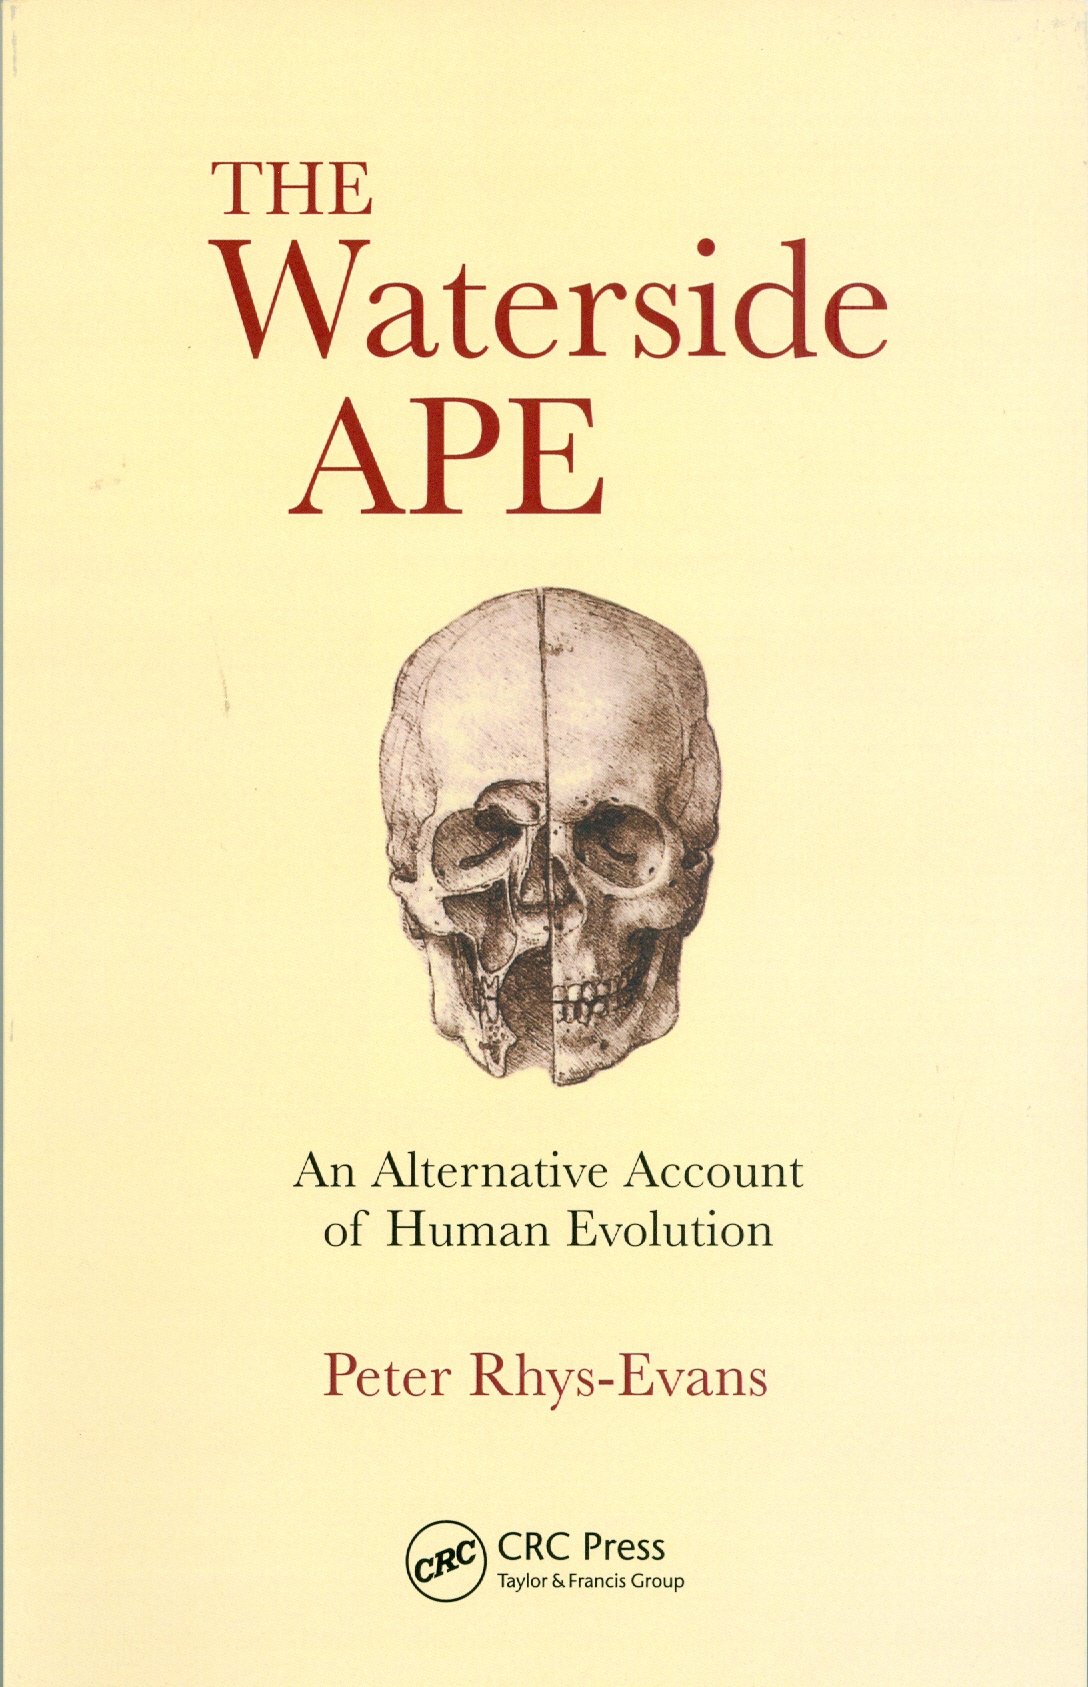 The Waterside Ape: An Alternative Account of Human Evolution